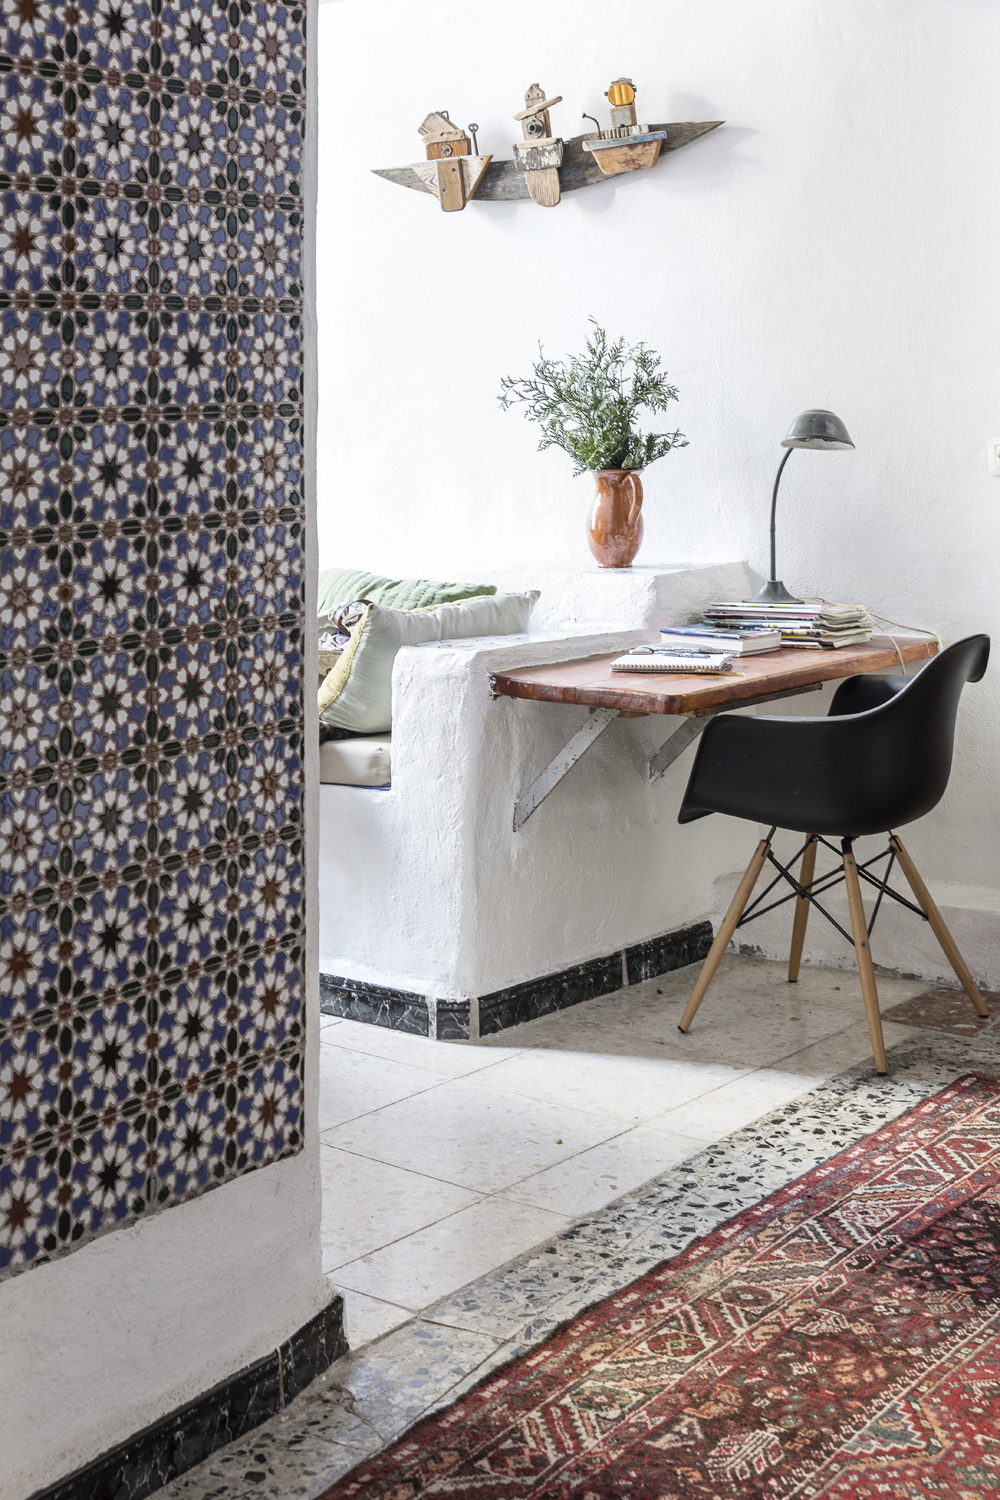 Canillas de Aceituno, Spain, holiday, rent, apartment, townhouse, rental, vacationhome, home, interior, spanish, style, interiorphotography, interior design, photographer, Frida Steiner, Visualaddict, visualaddictfrida,, tiles, workspace